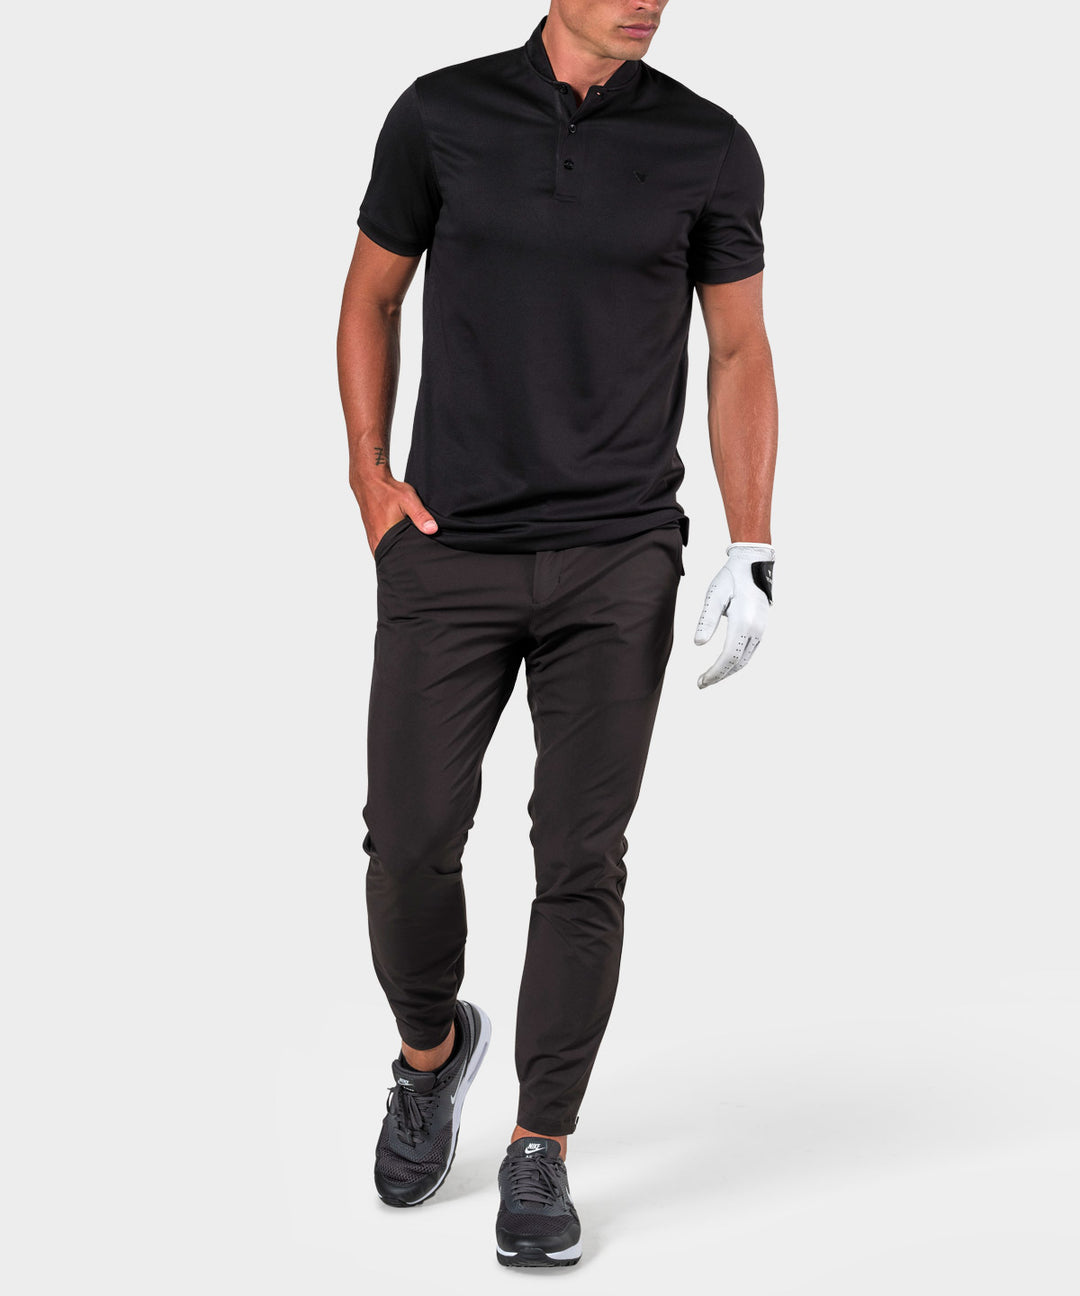 Black Tour Polo Shirt